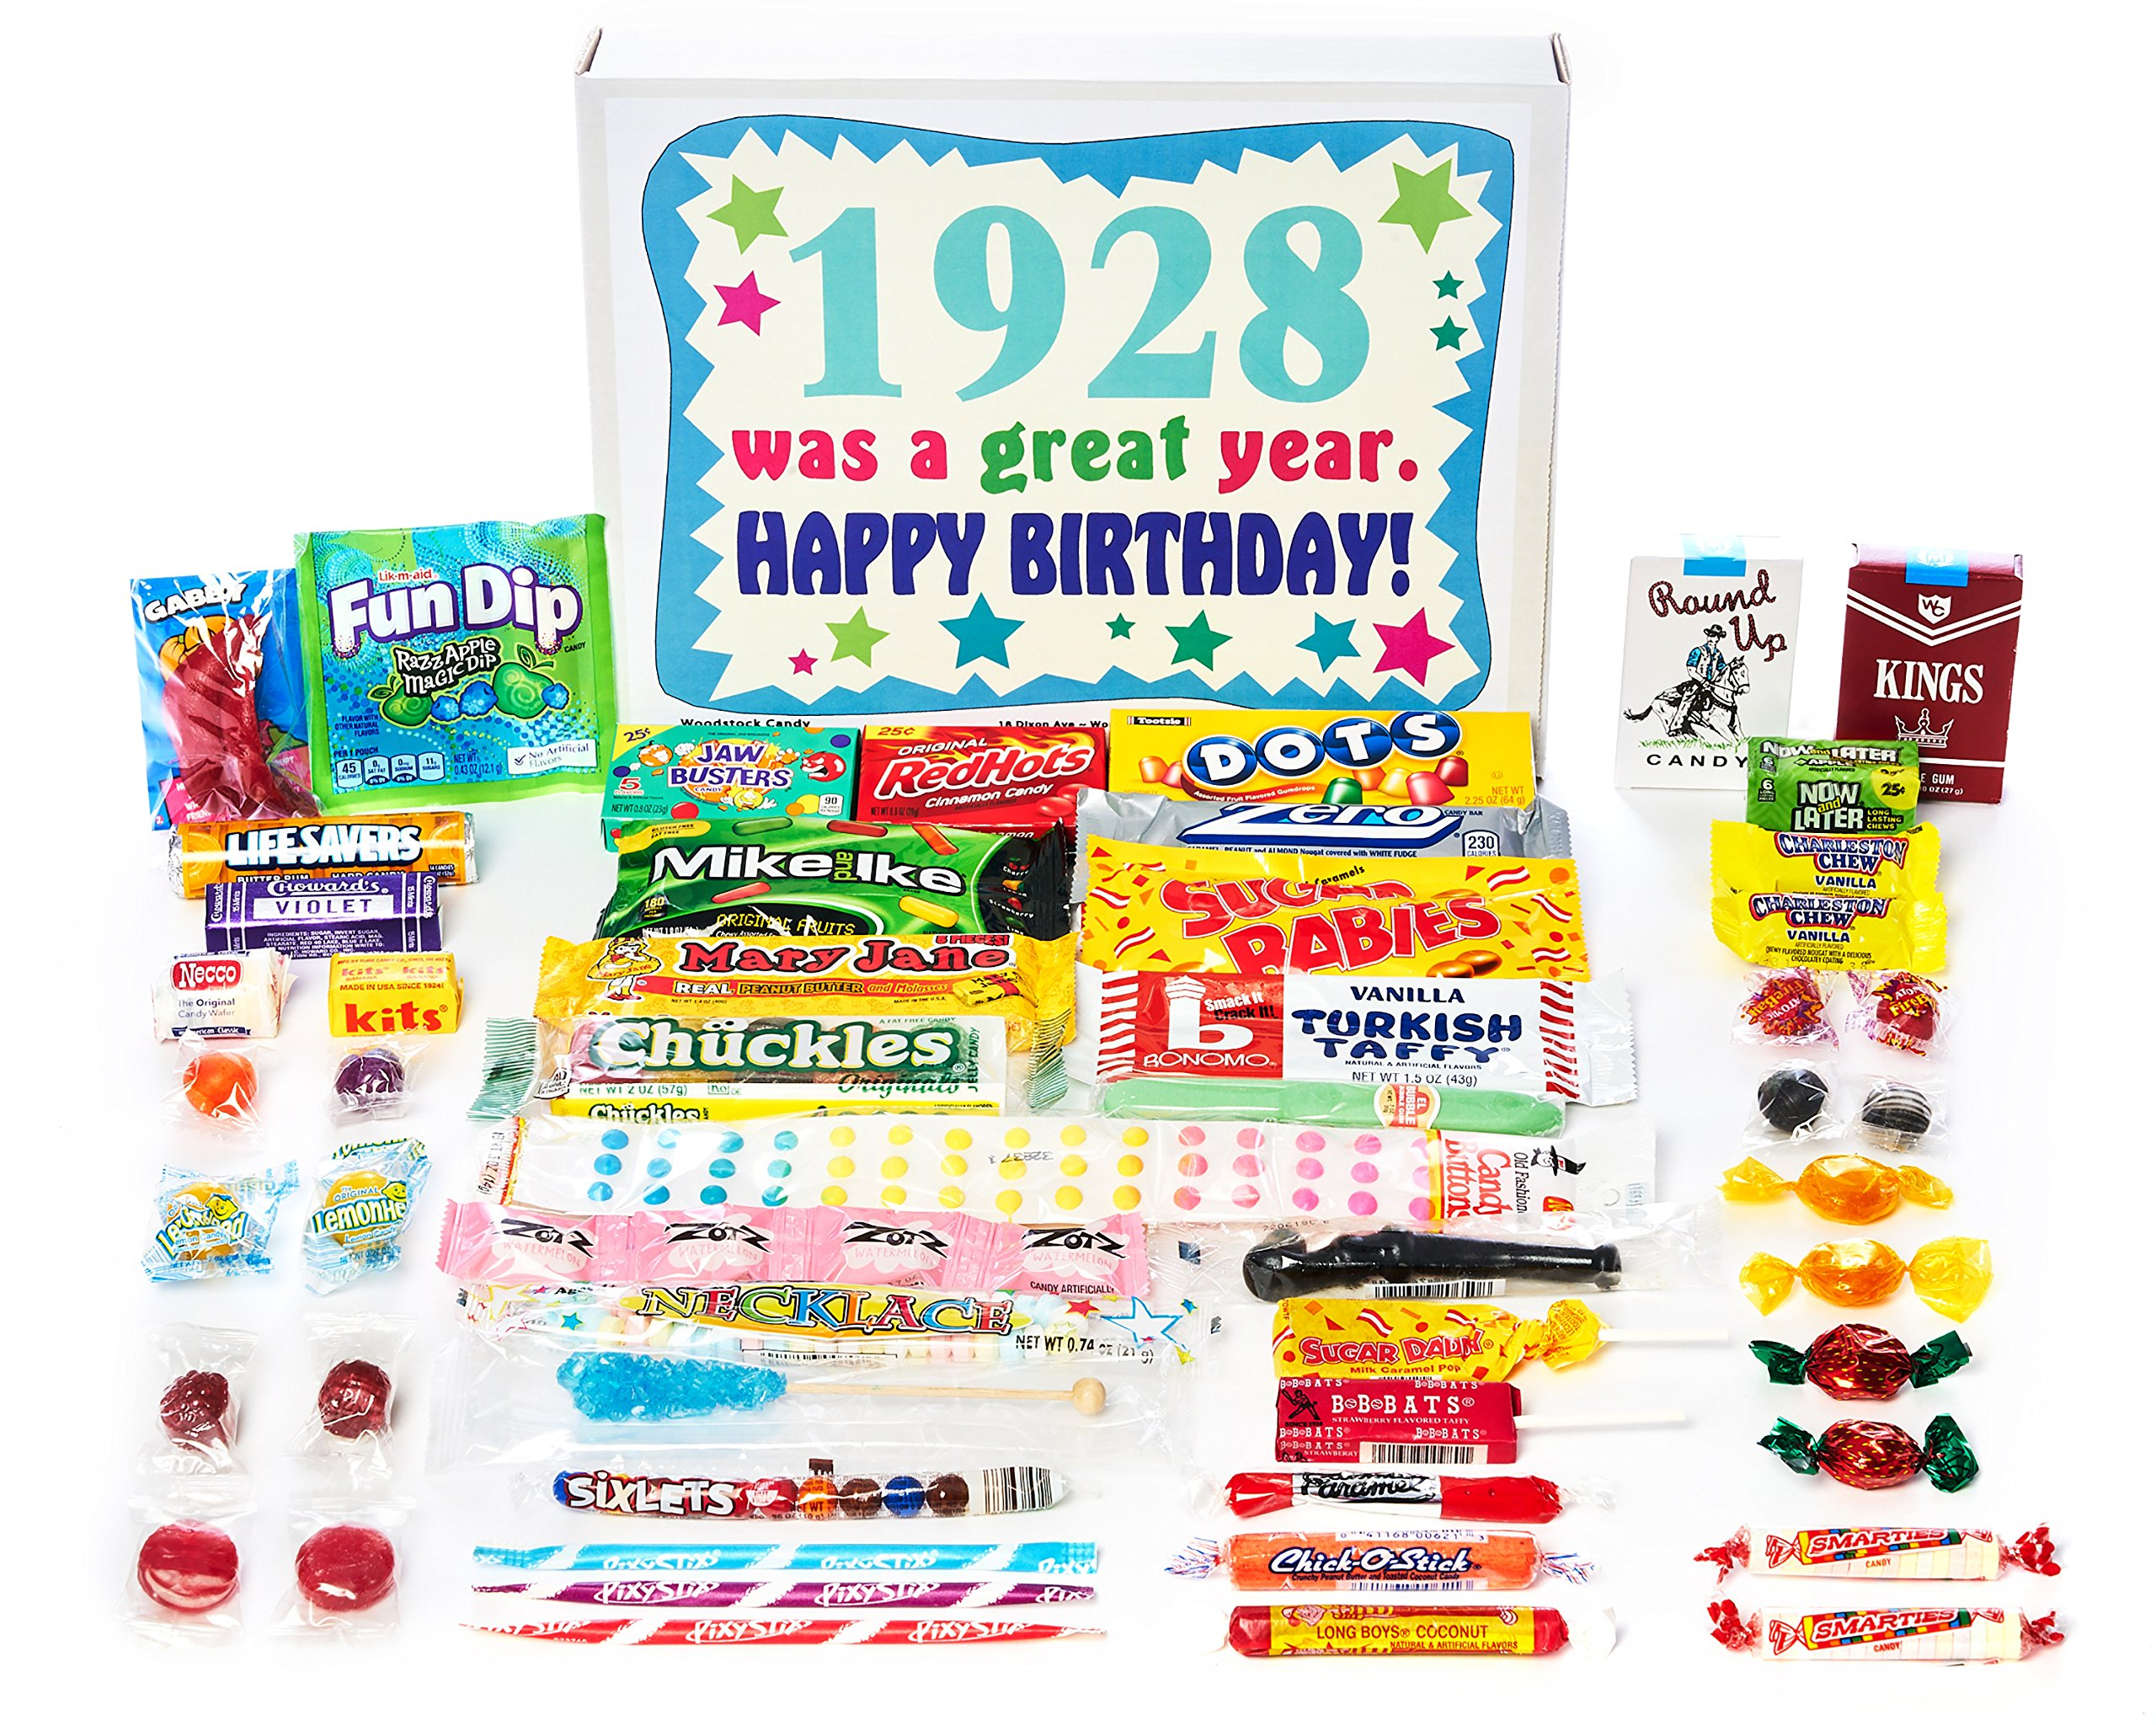 Woodstock Candy ~ 1928 91st Birthday Gift Box Vintage Nostalgic Retro Candy Assortment from Childhood for 91 Year Old Man or Woman Born 1928